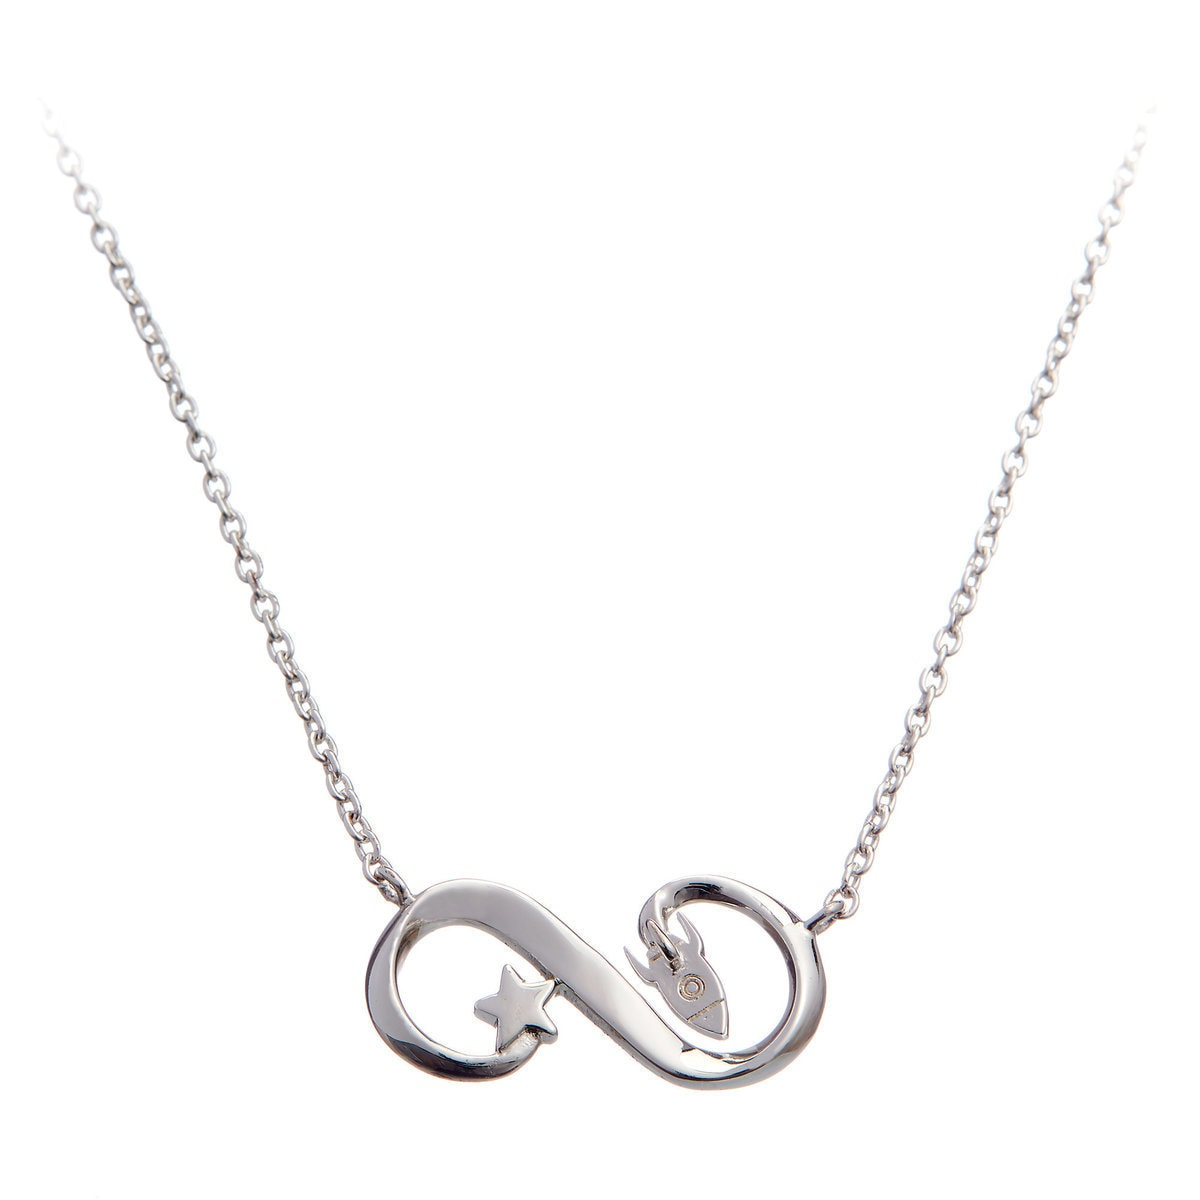 necklace sign shop sterling silver heart shopping infinity with adam